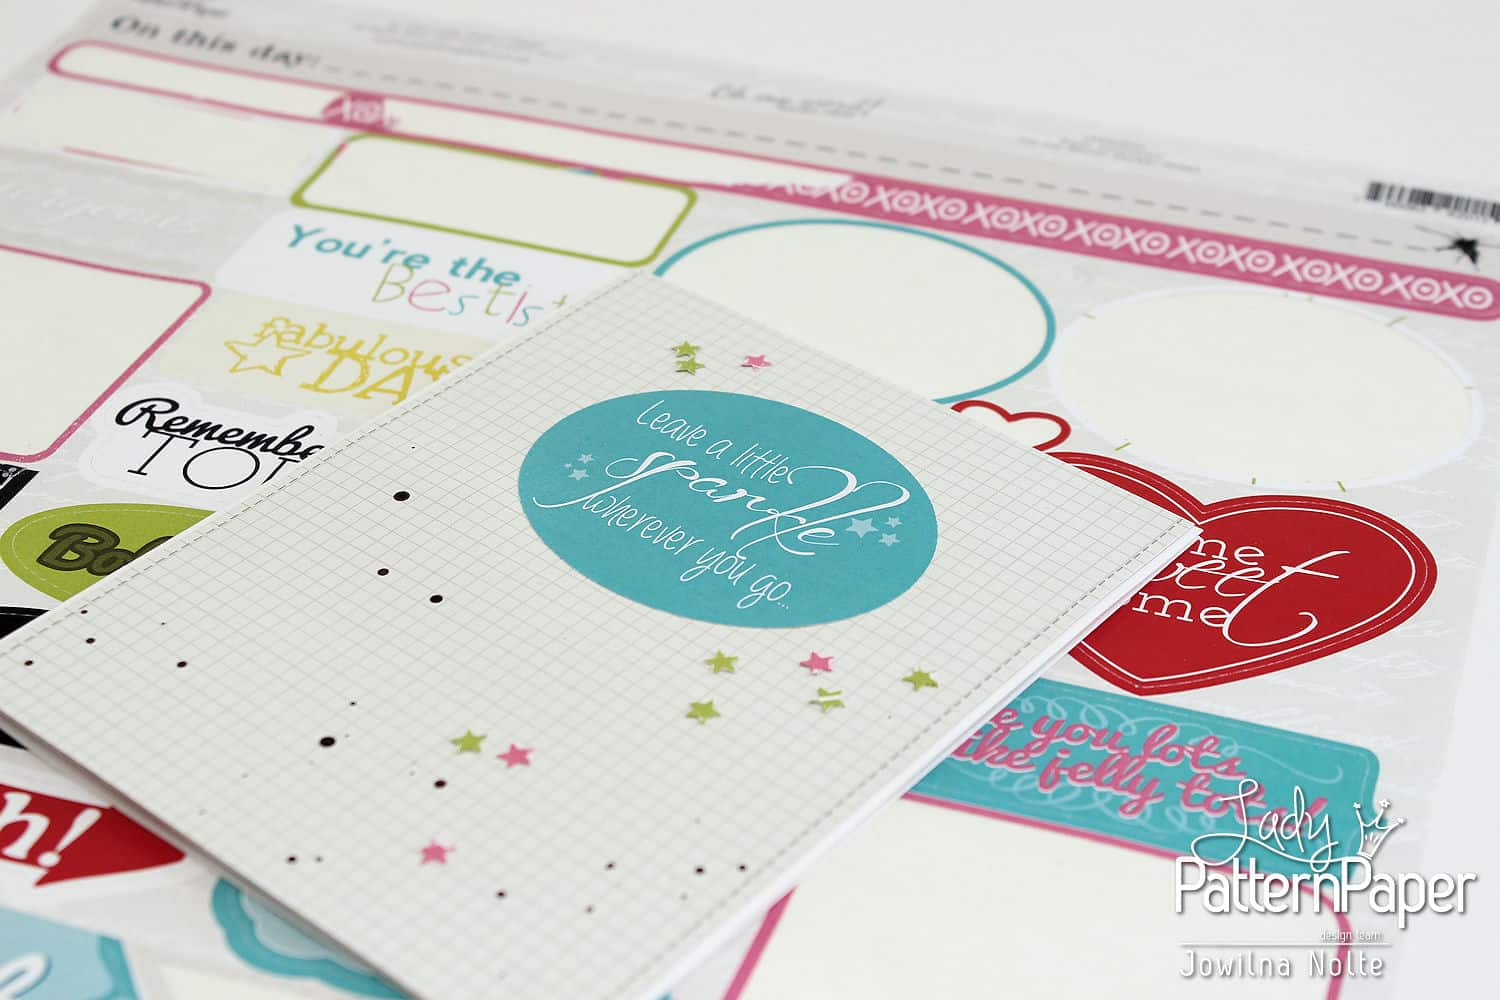 Sticker Sentiment Cards - Step 1